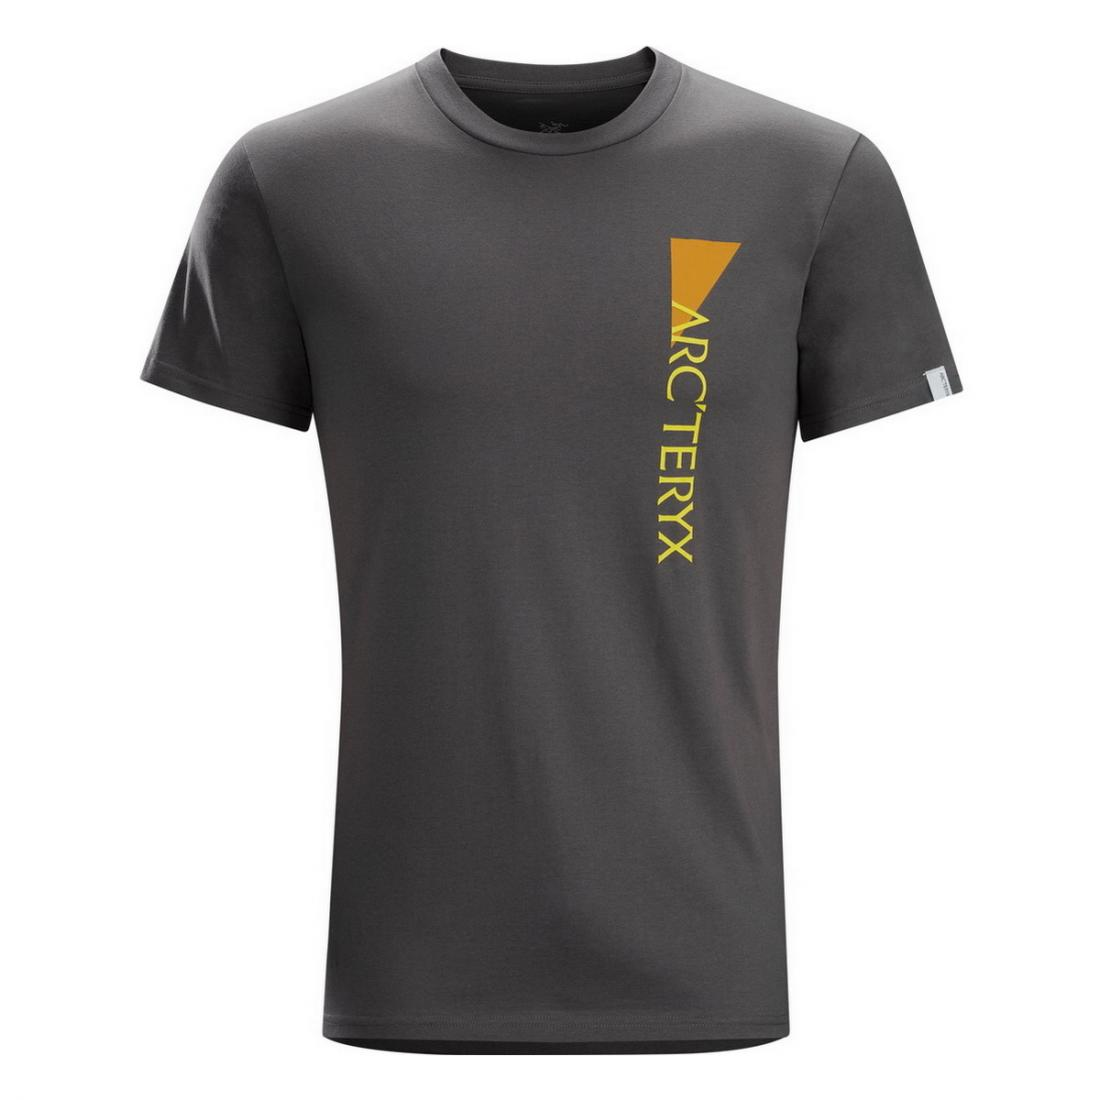 Футболка Upright SS T-Shirt муж.